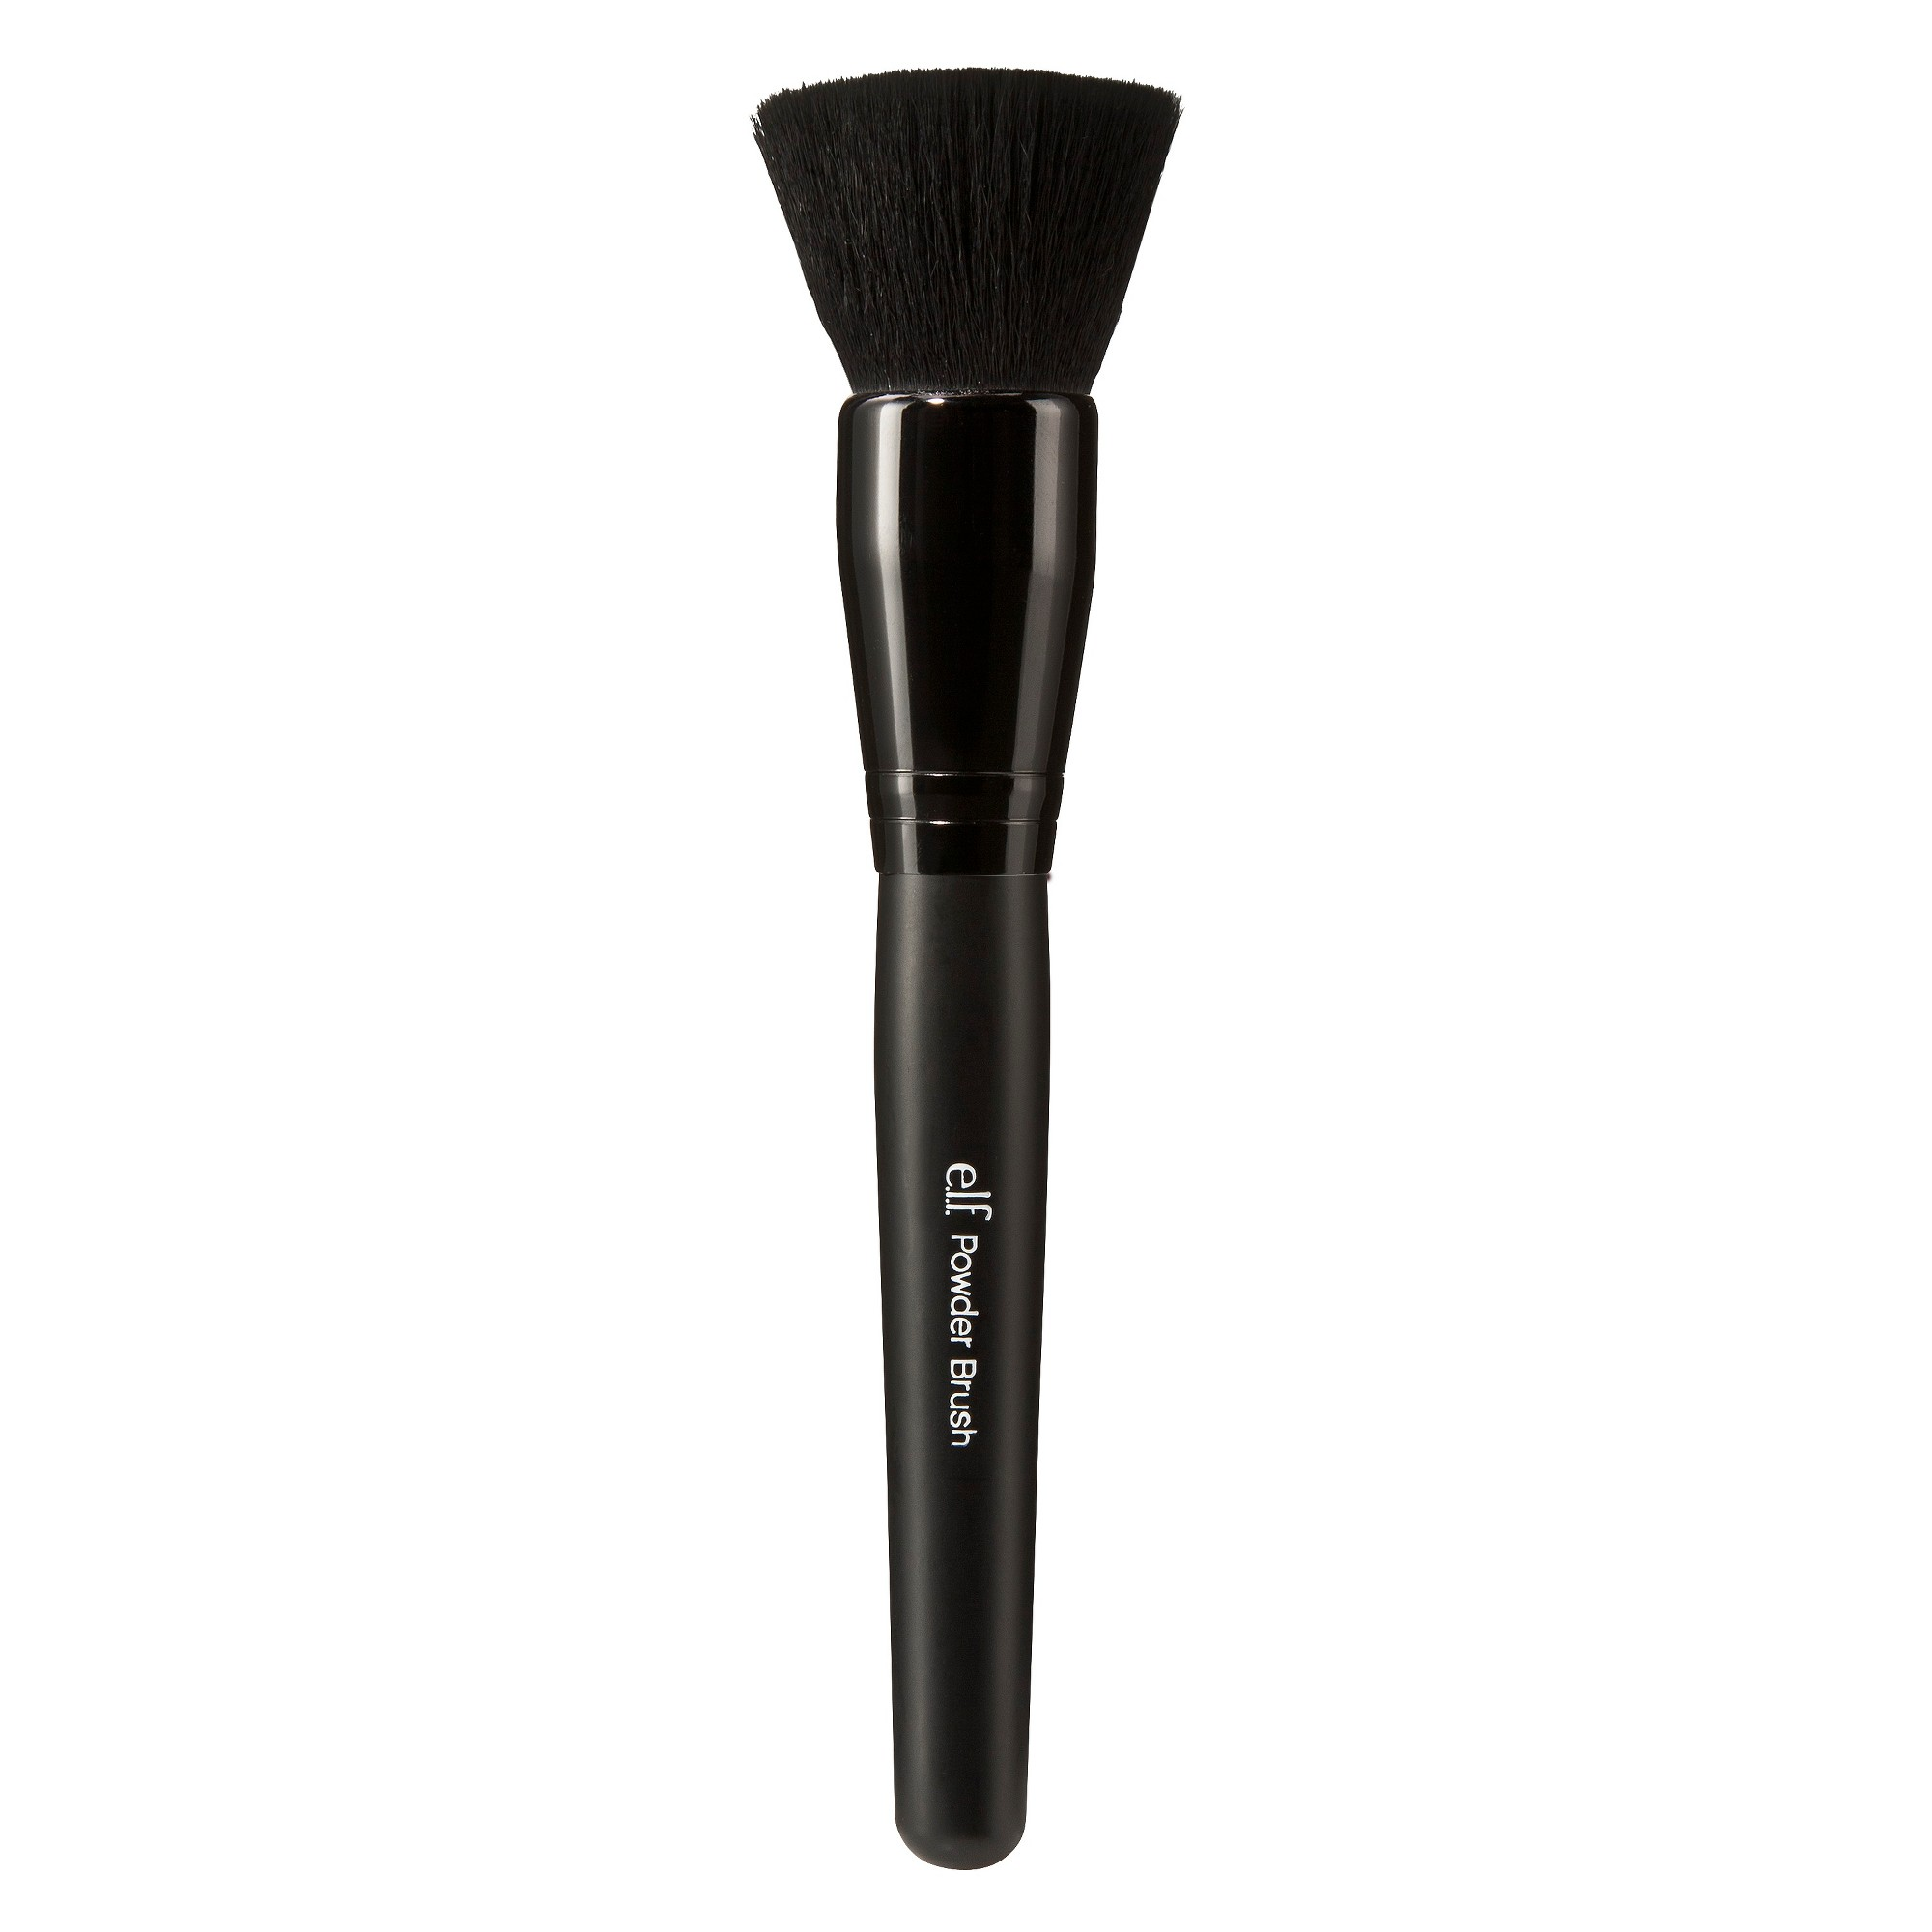 e.l.f Powder Brush, Makeup Brushes and Sets It cosmetics